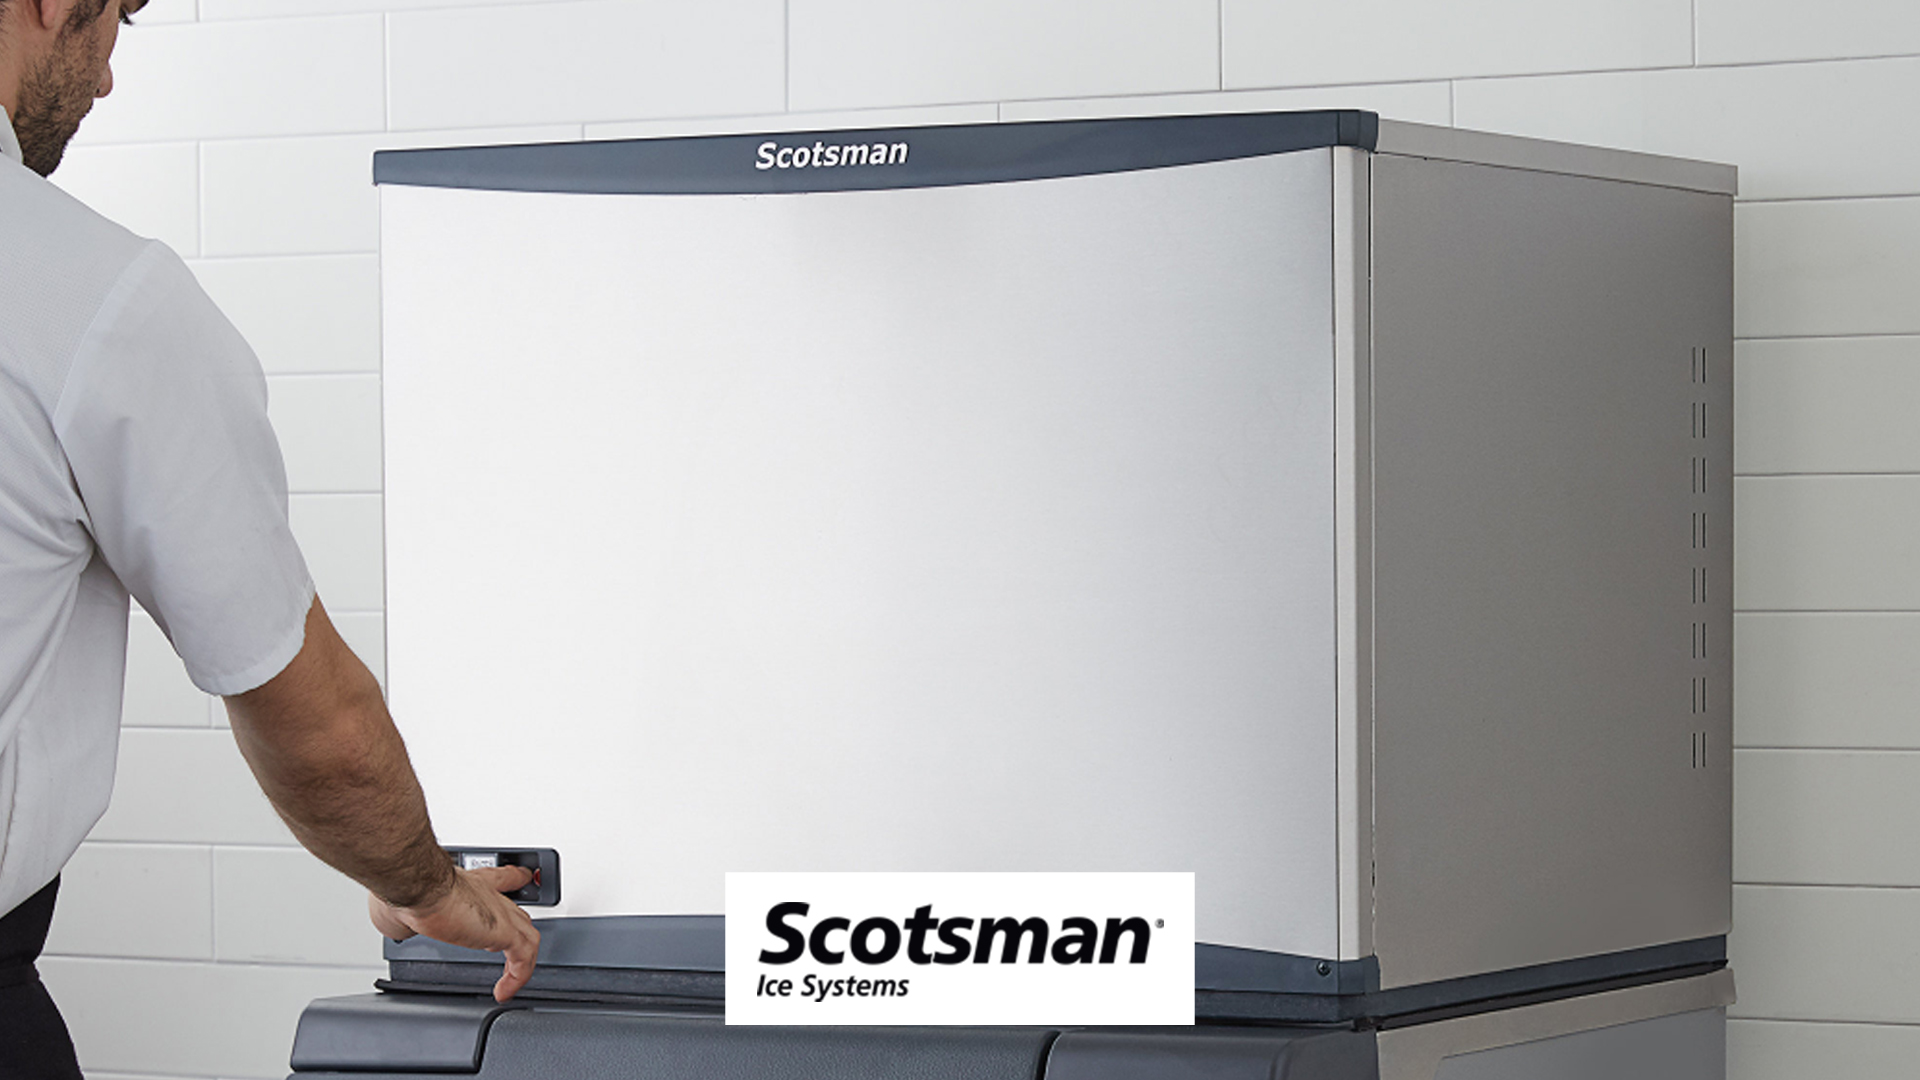 Scotsman Ice Systems Global Brand